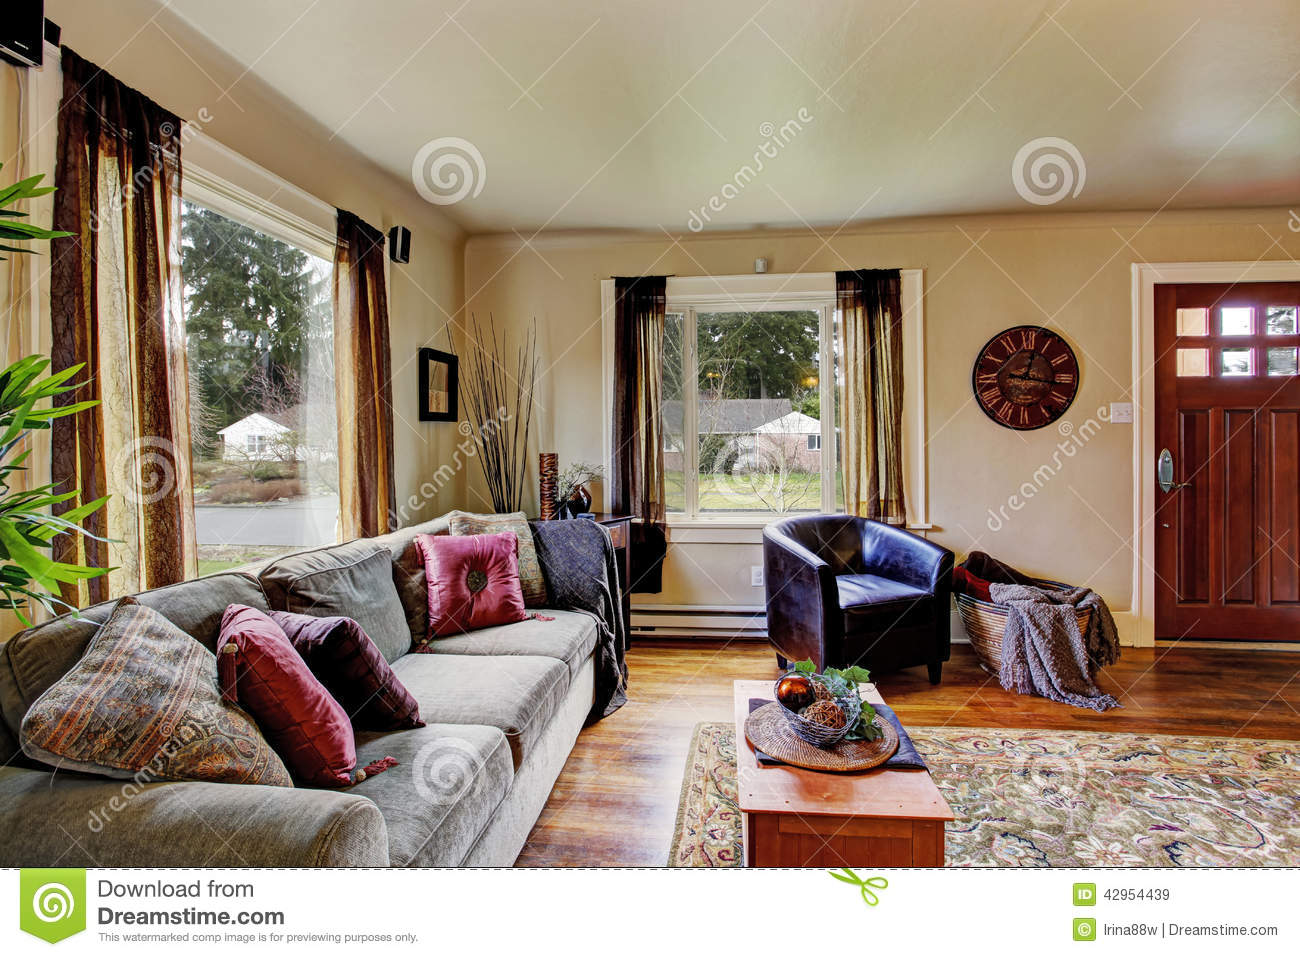 Living room interior in american house stock image image for Design della casa americana